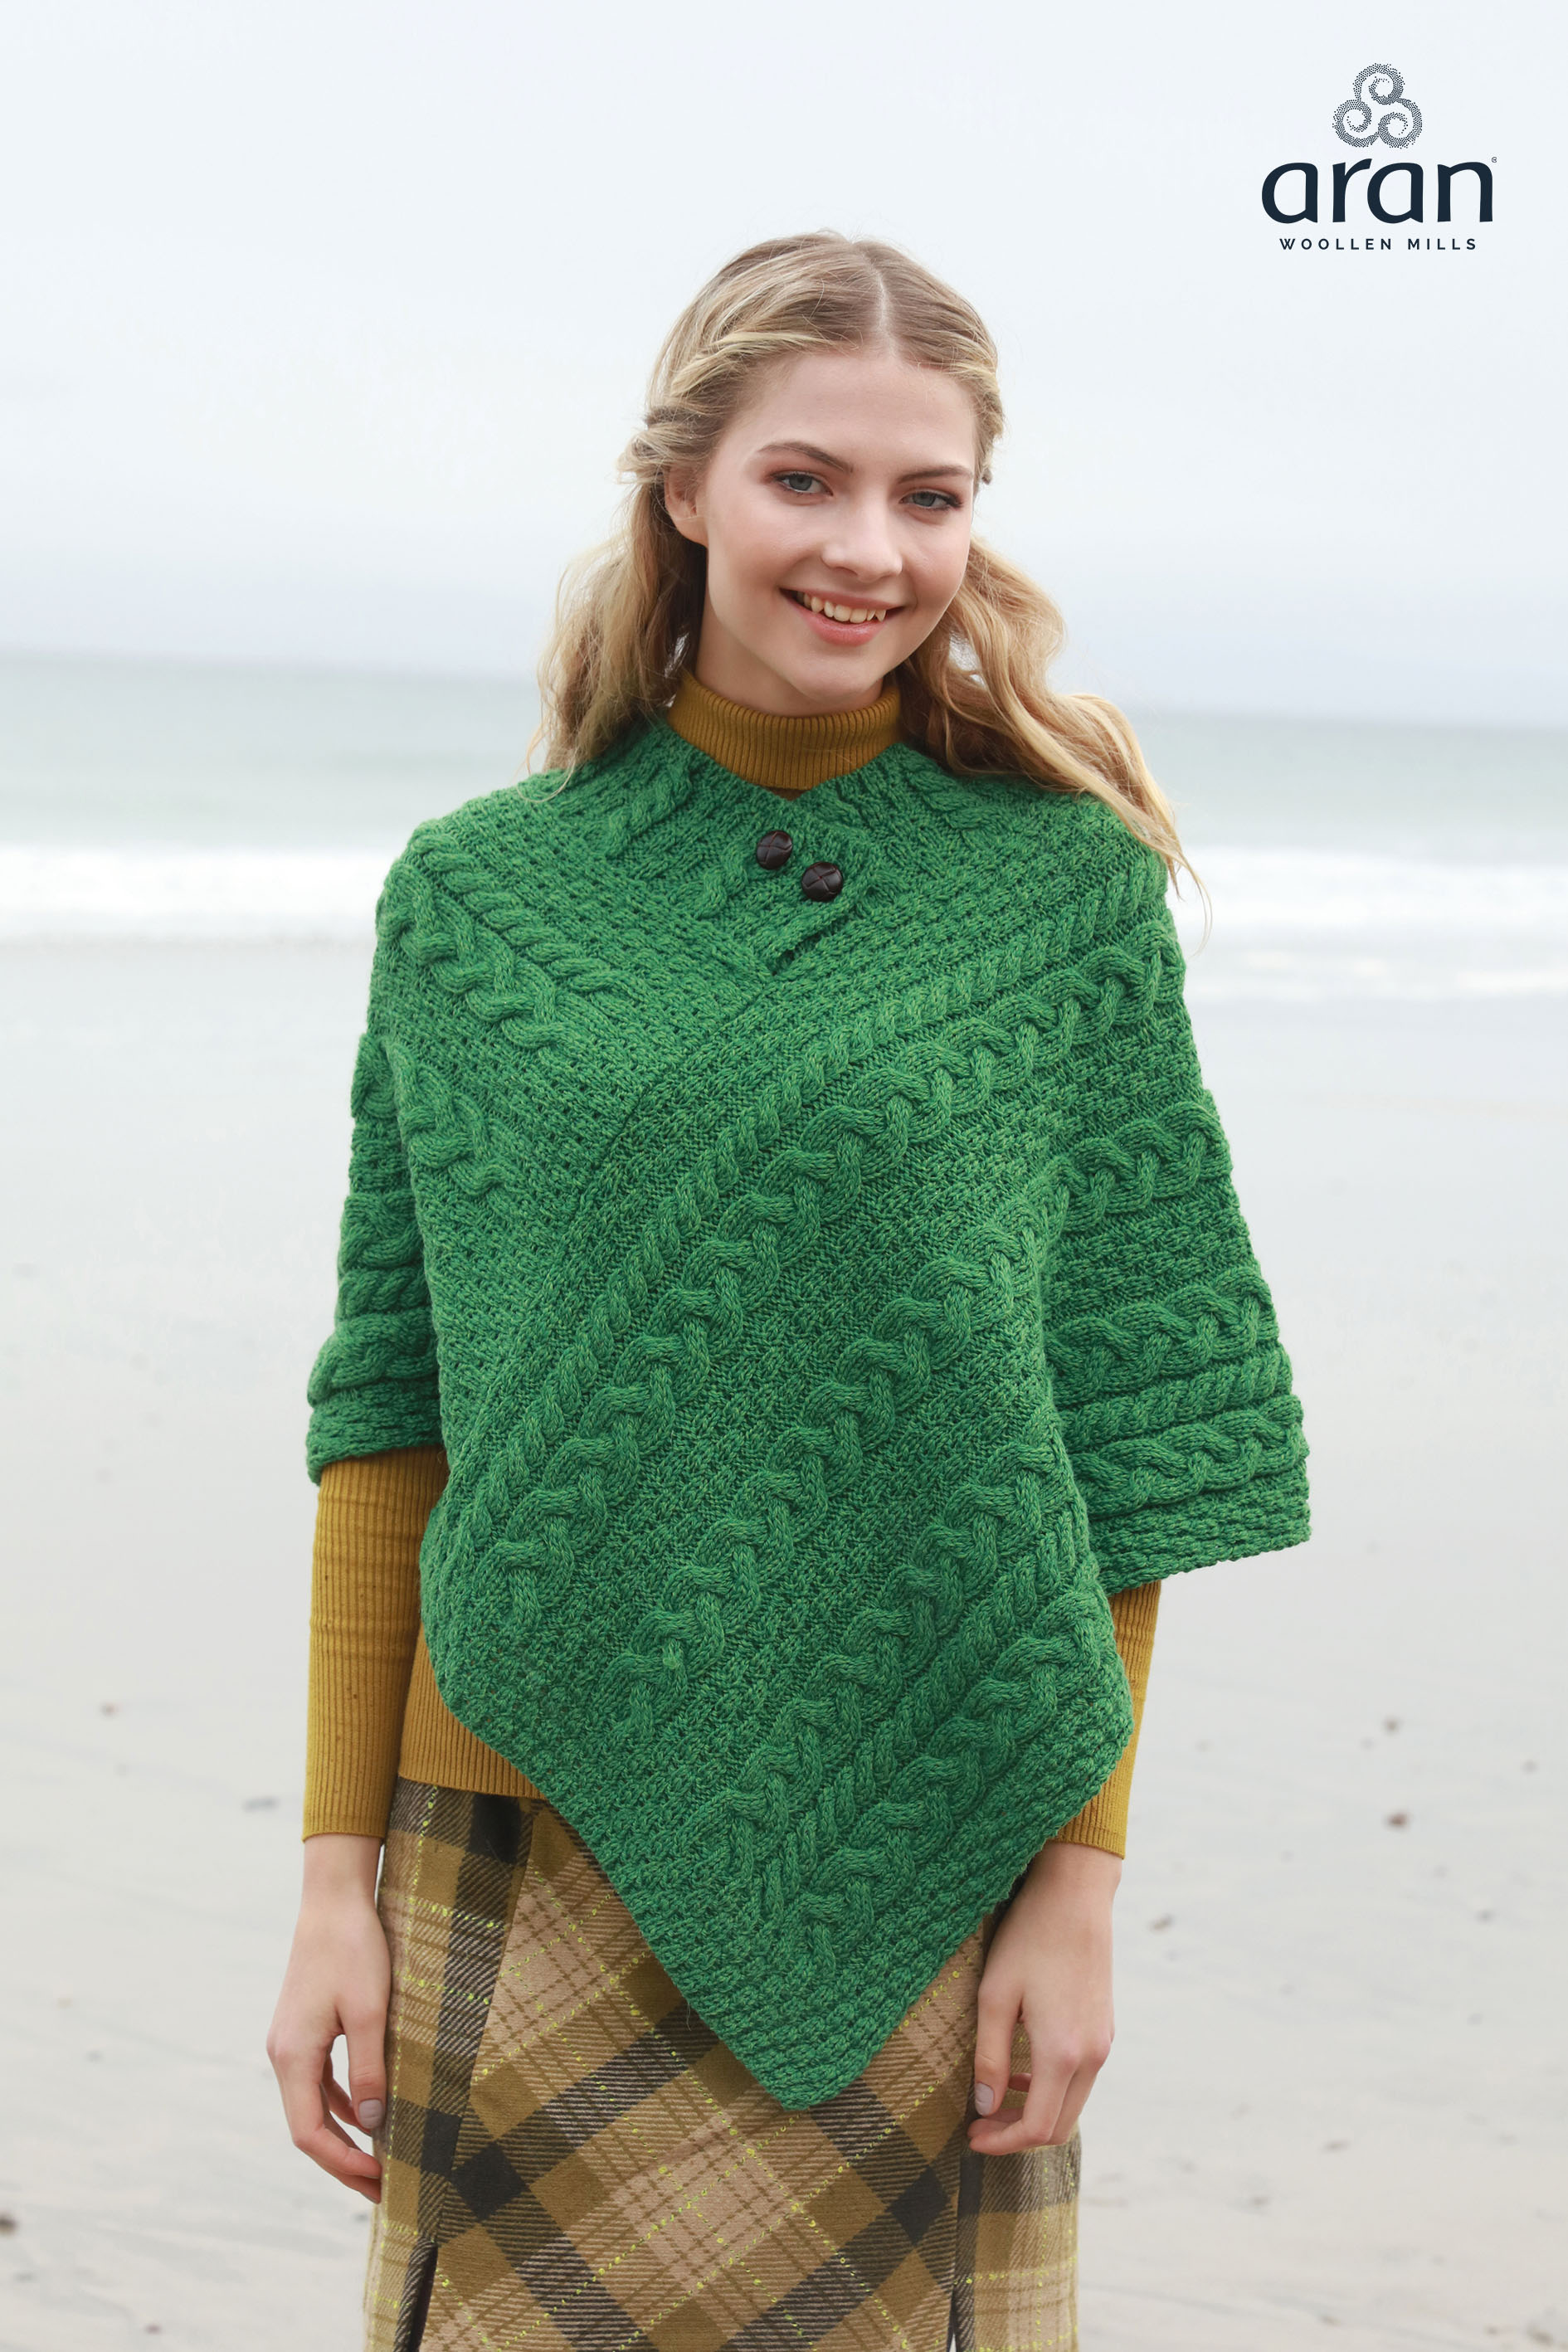 c23e6ed10557 Green Cable Knit Aran Poncho a200 257 - Skellig Gift Store